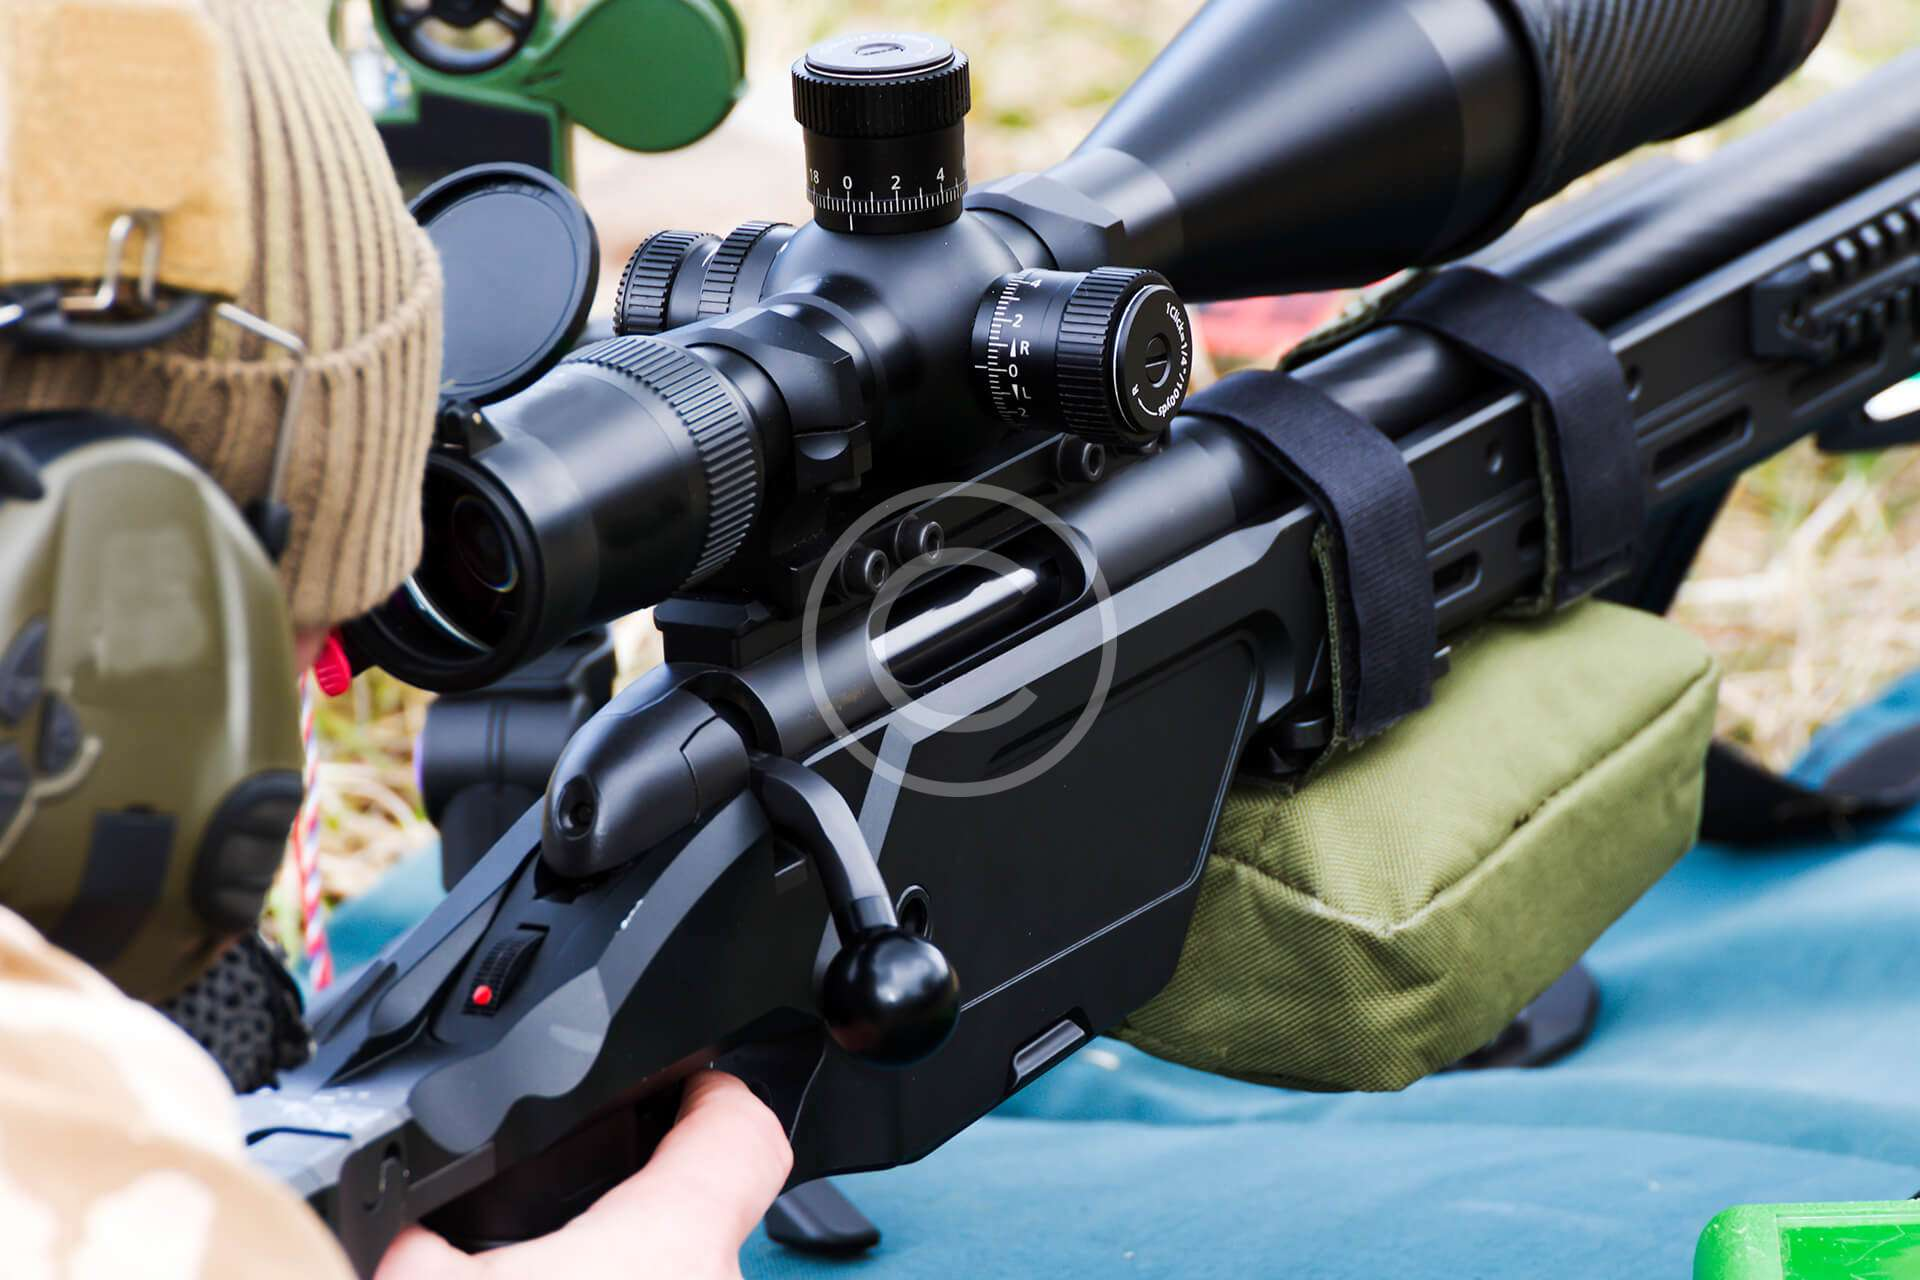 New Tactical Riflescope: Great Quality and Price